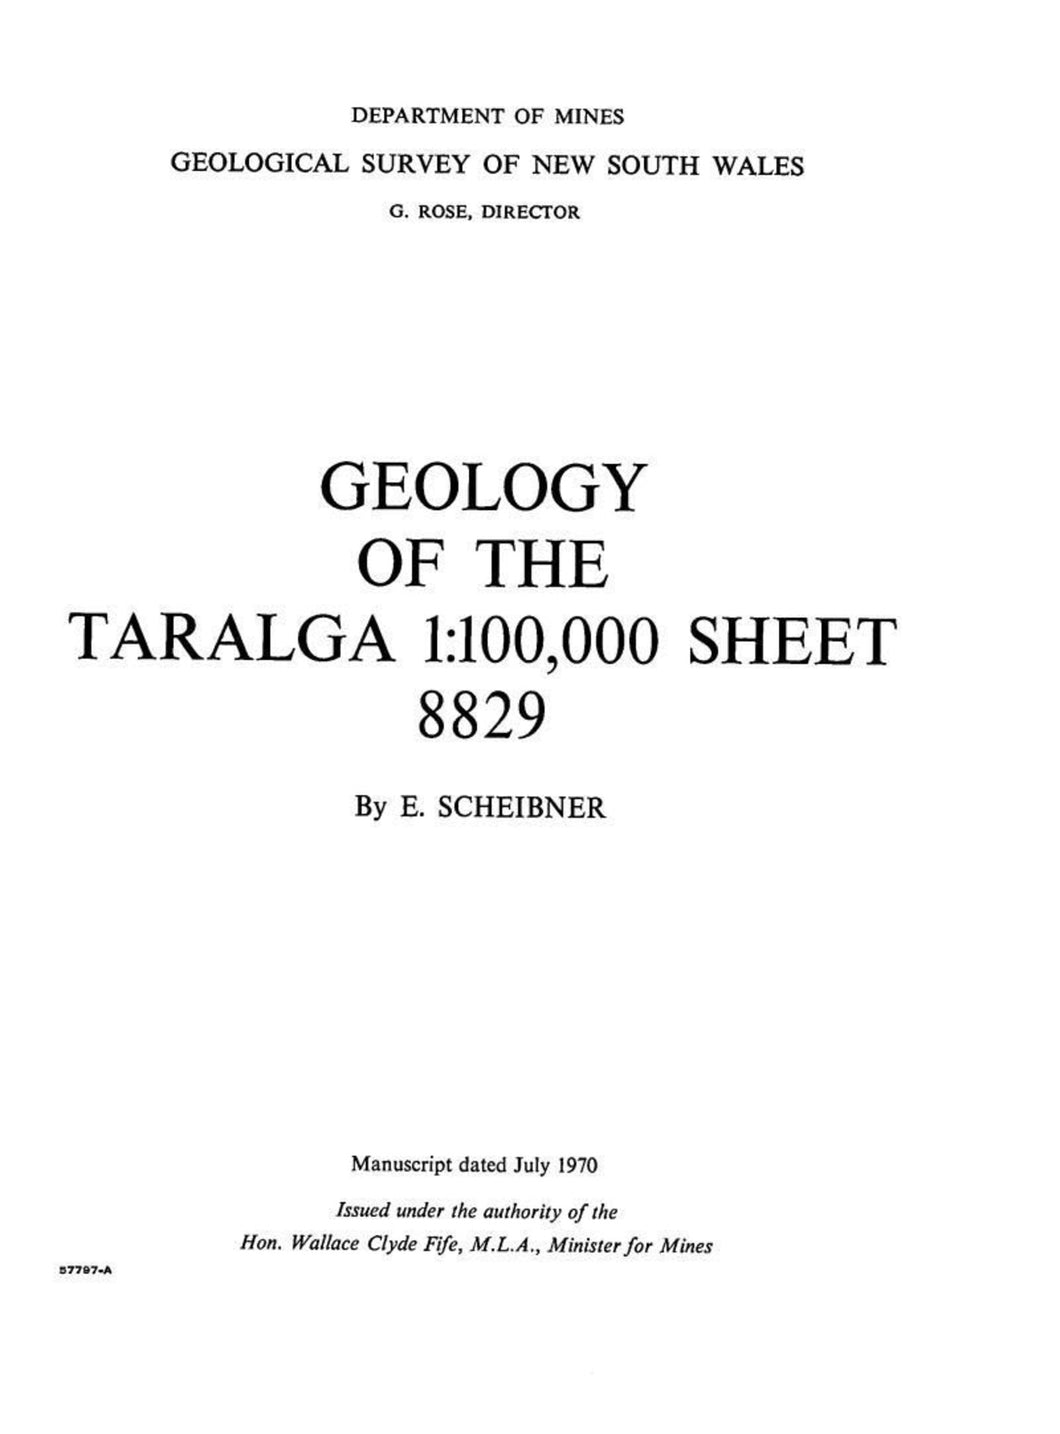 Image of Taralga Explanatory Notes 1970 book cover